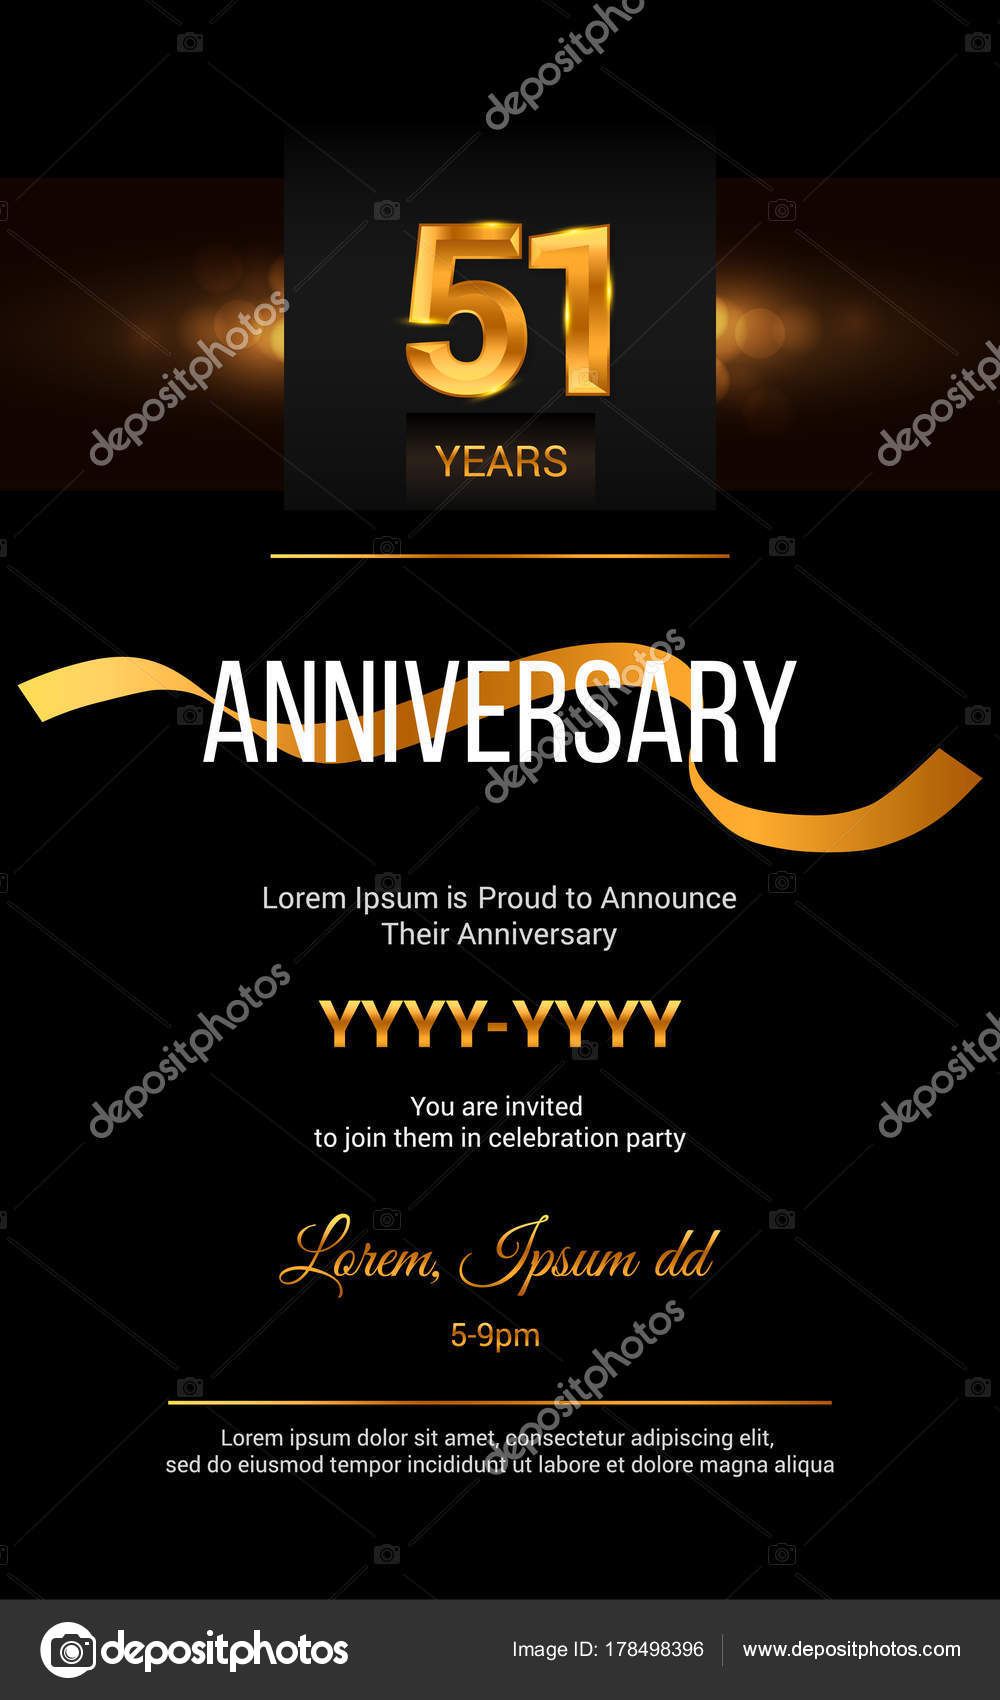 51 years anniversary invitation card stock vector 51 years anniversary invitation card stock vector stopboris Image collections